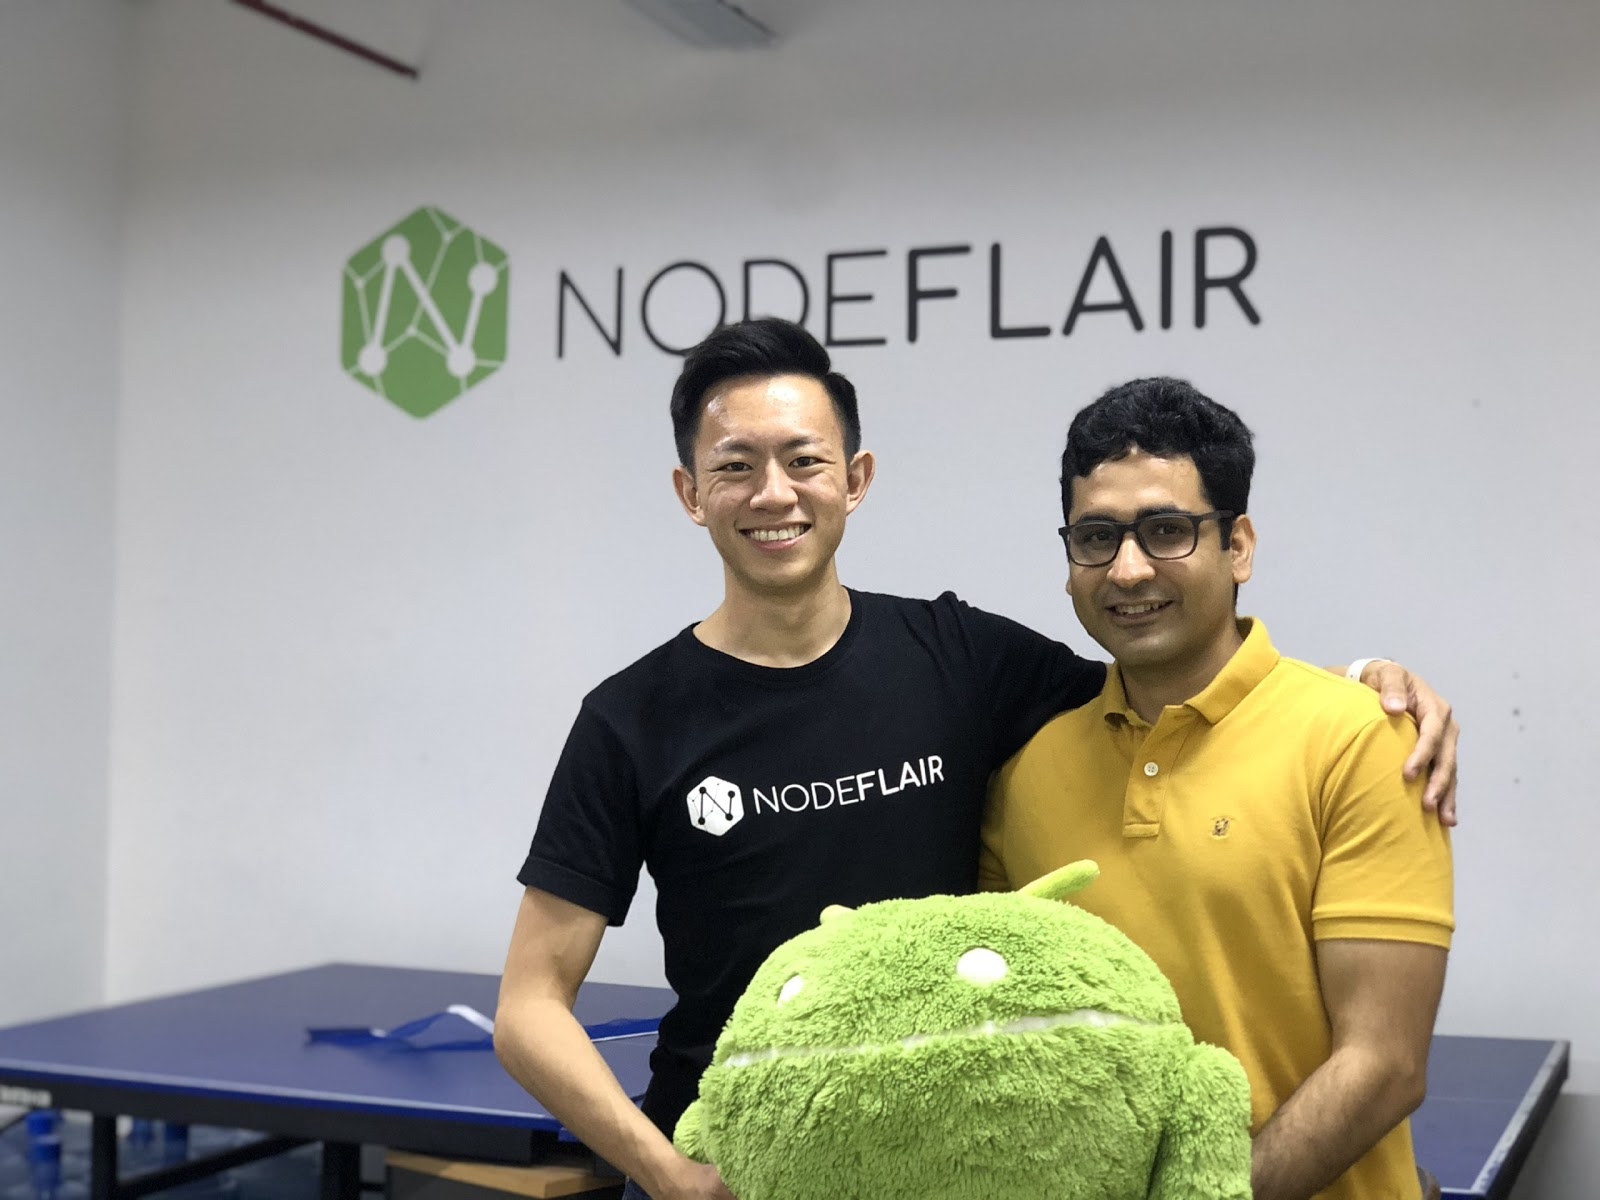 Developers share their experience on their journey with NodeFlair